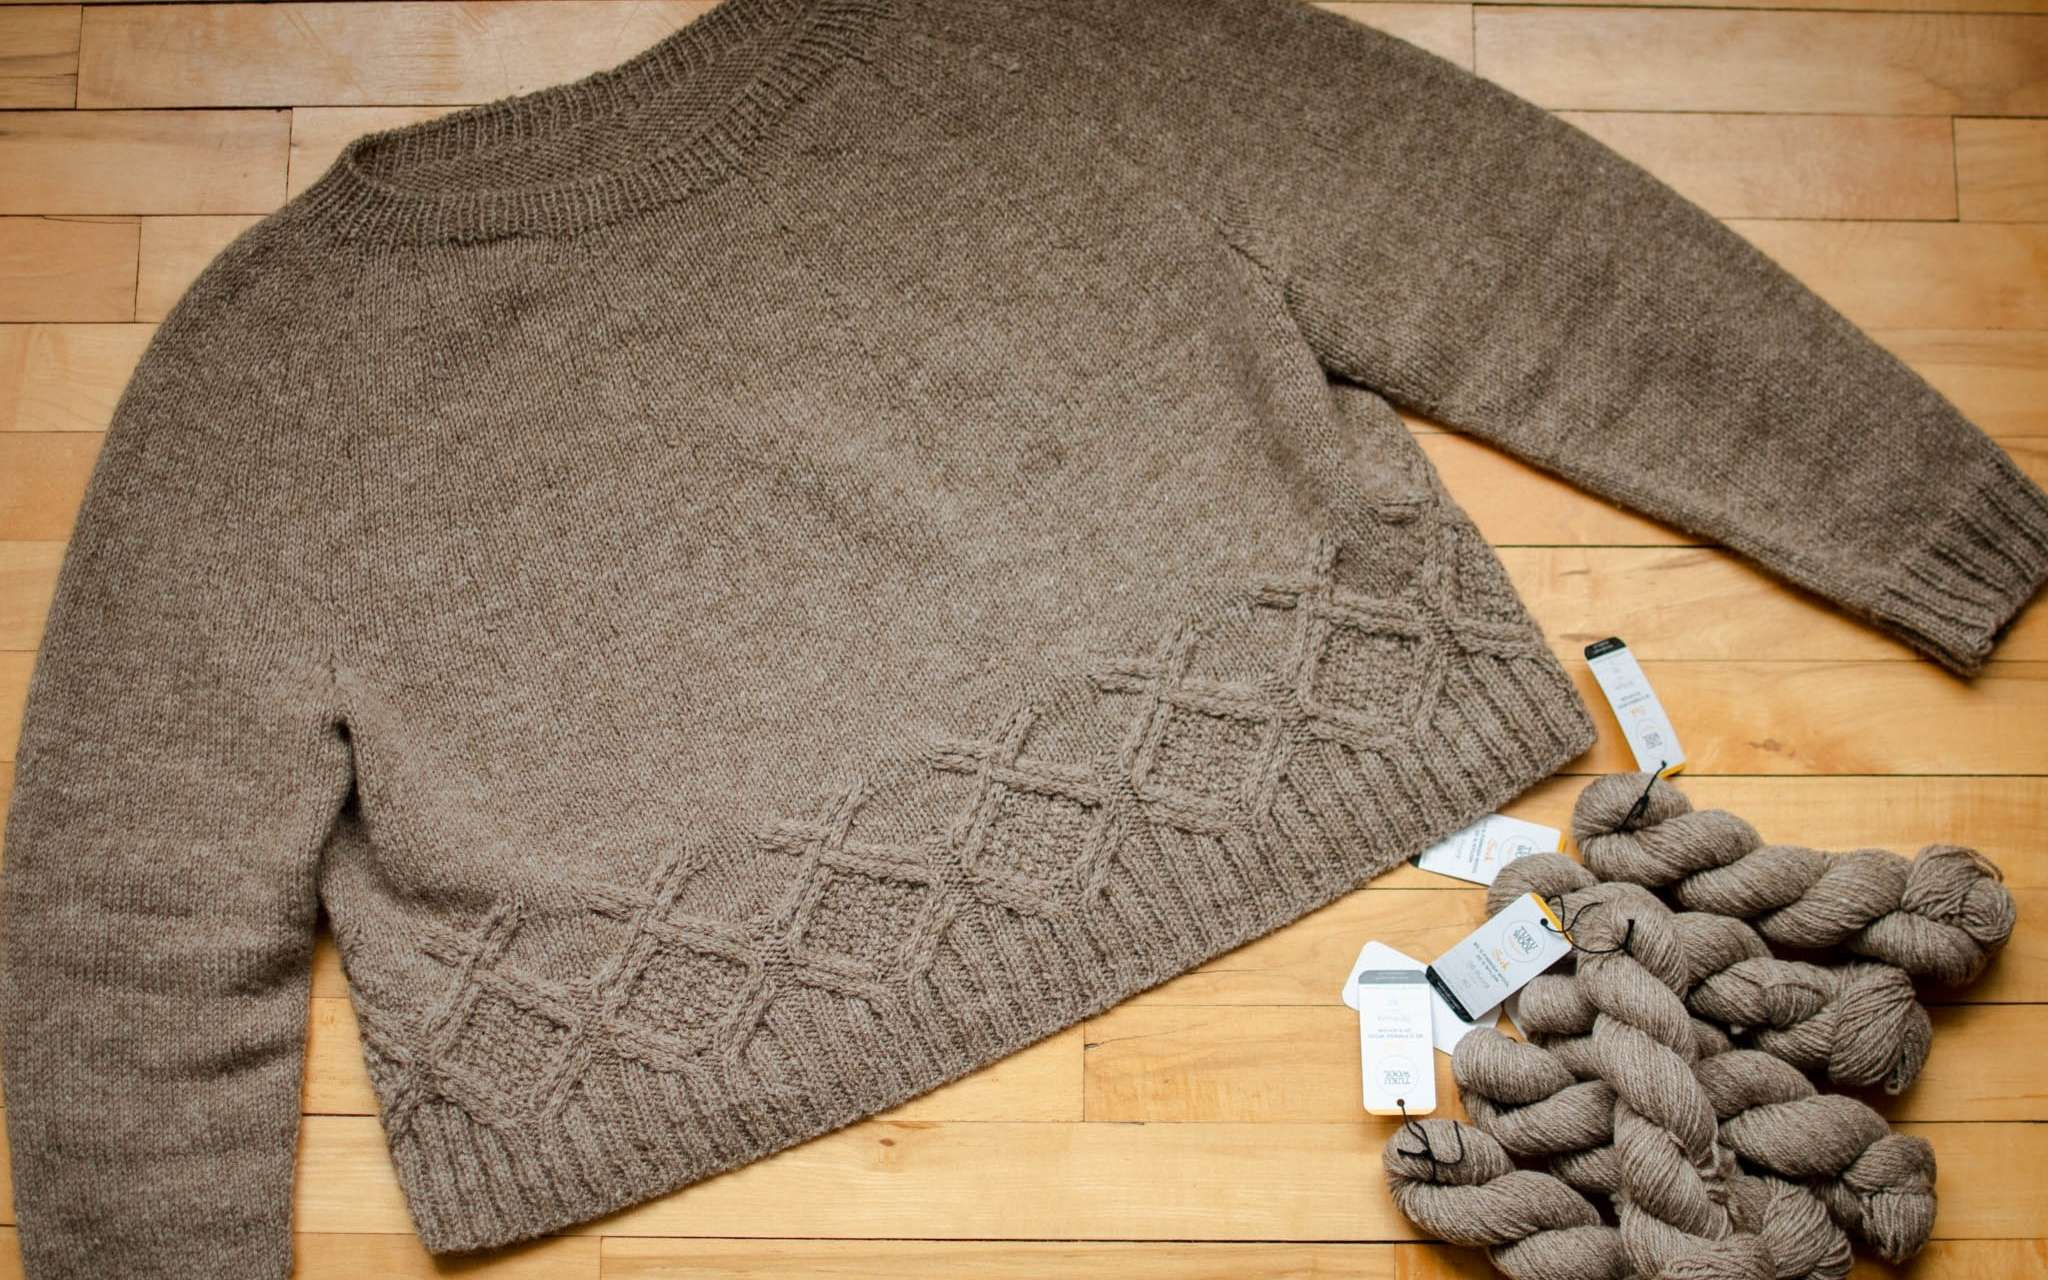 a pale brown neutral sweater with cabled detail around the hem is laid out flat on a wooden surface. Twisted skeins of the same yarn are piled next to it.